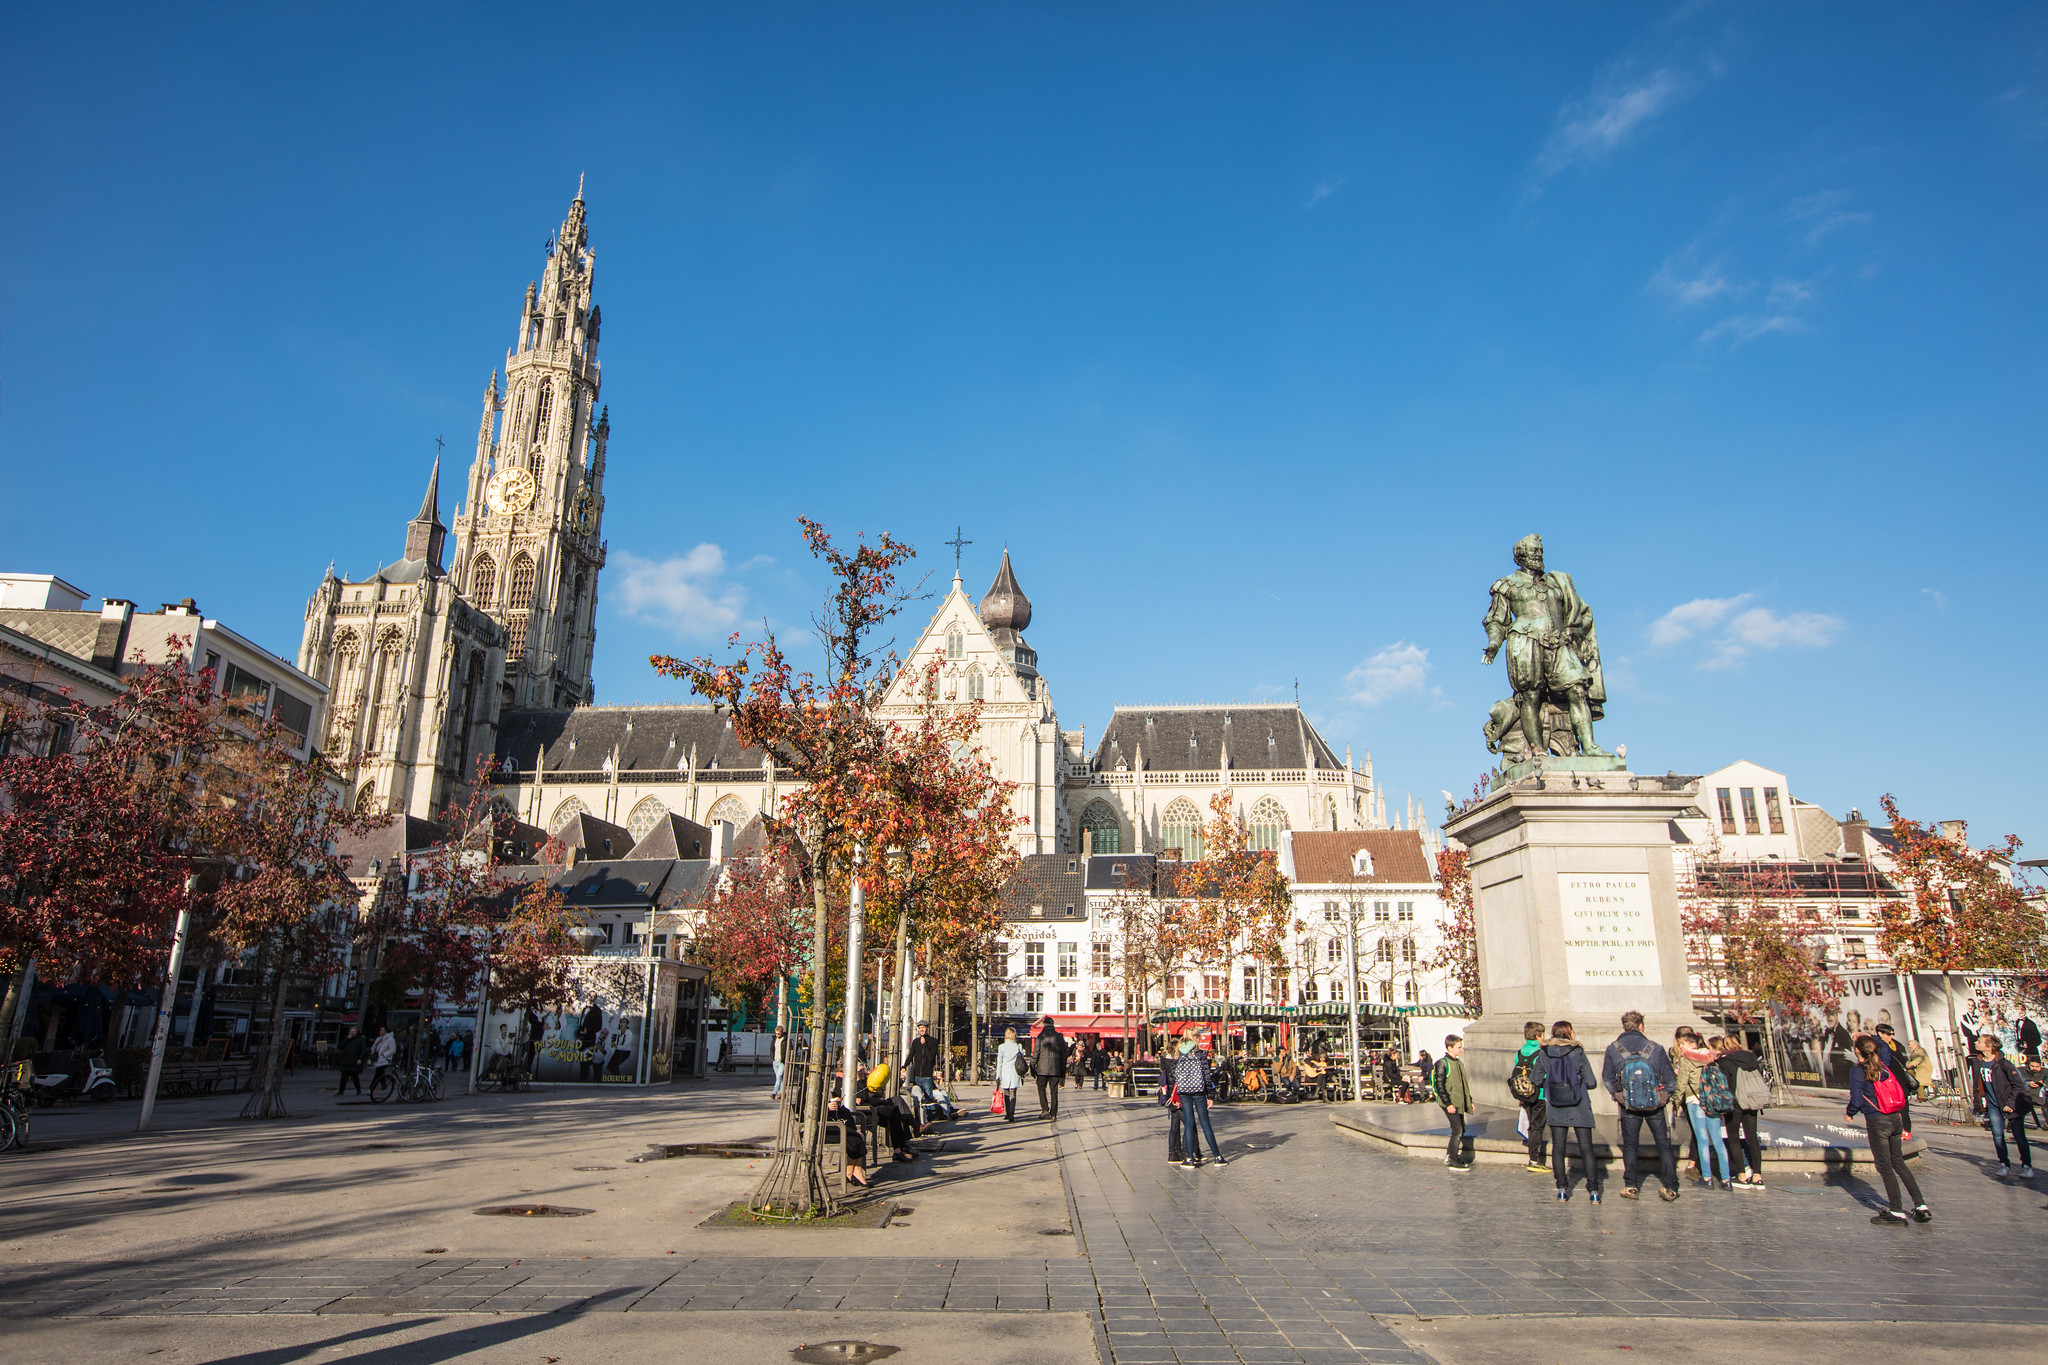 Antwerp cathedral and Rubens